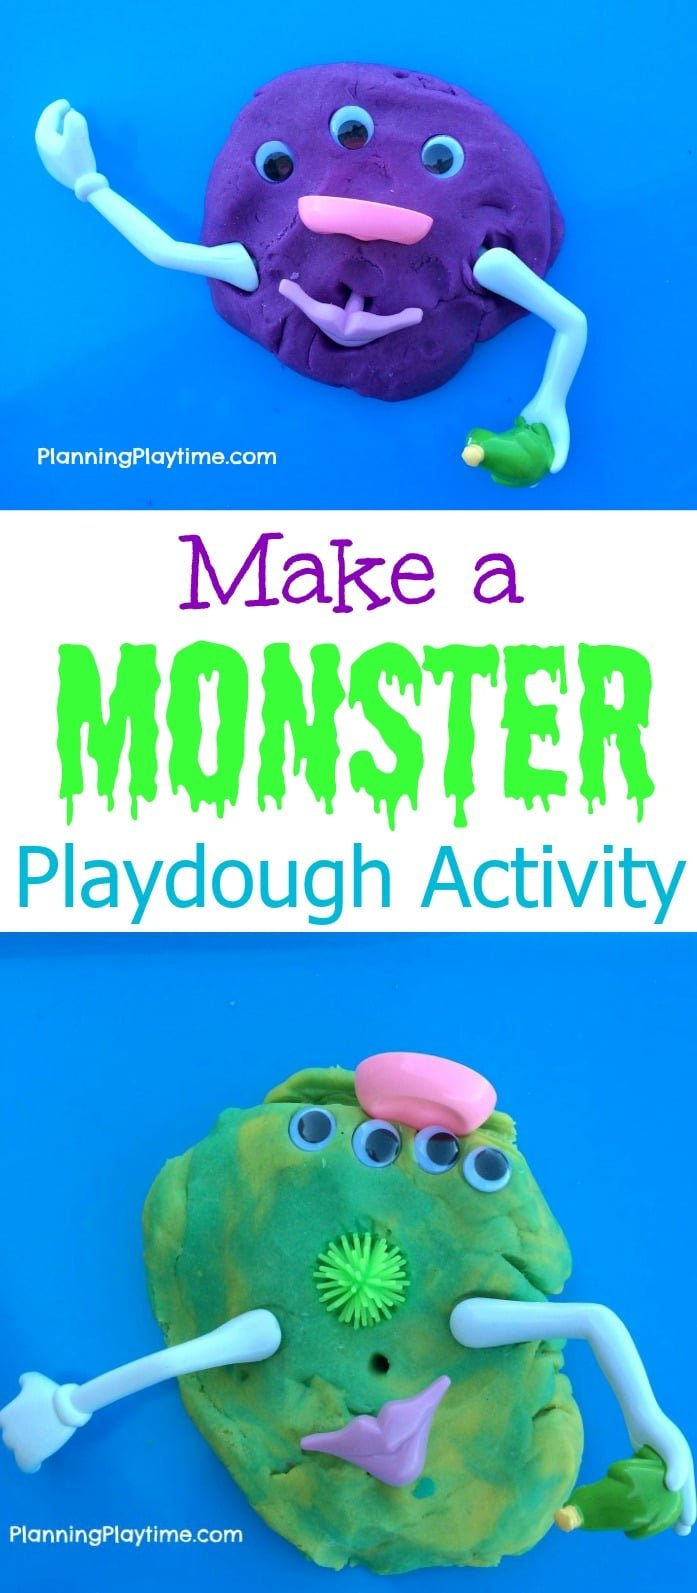 Make a Monster Playdough activtiy for toddlers.